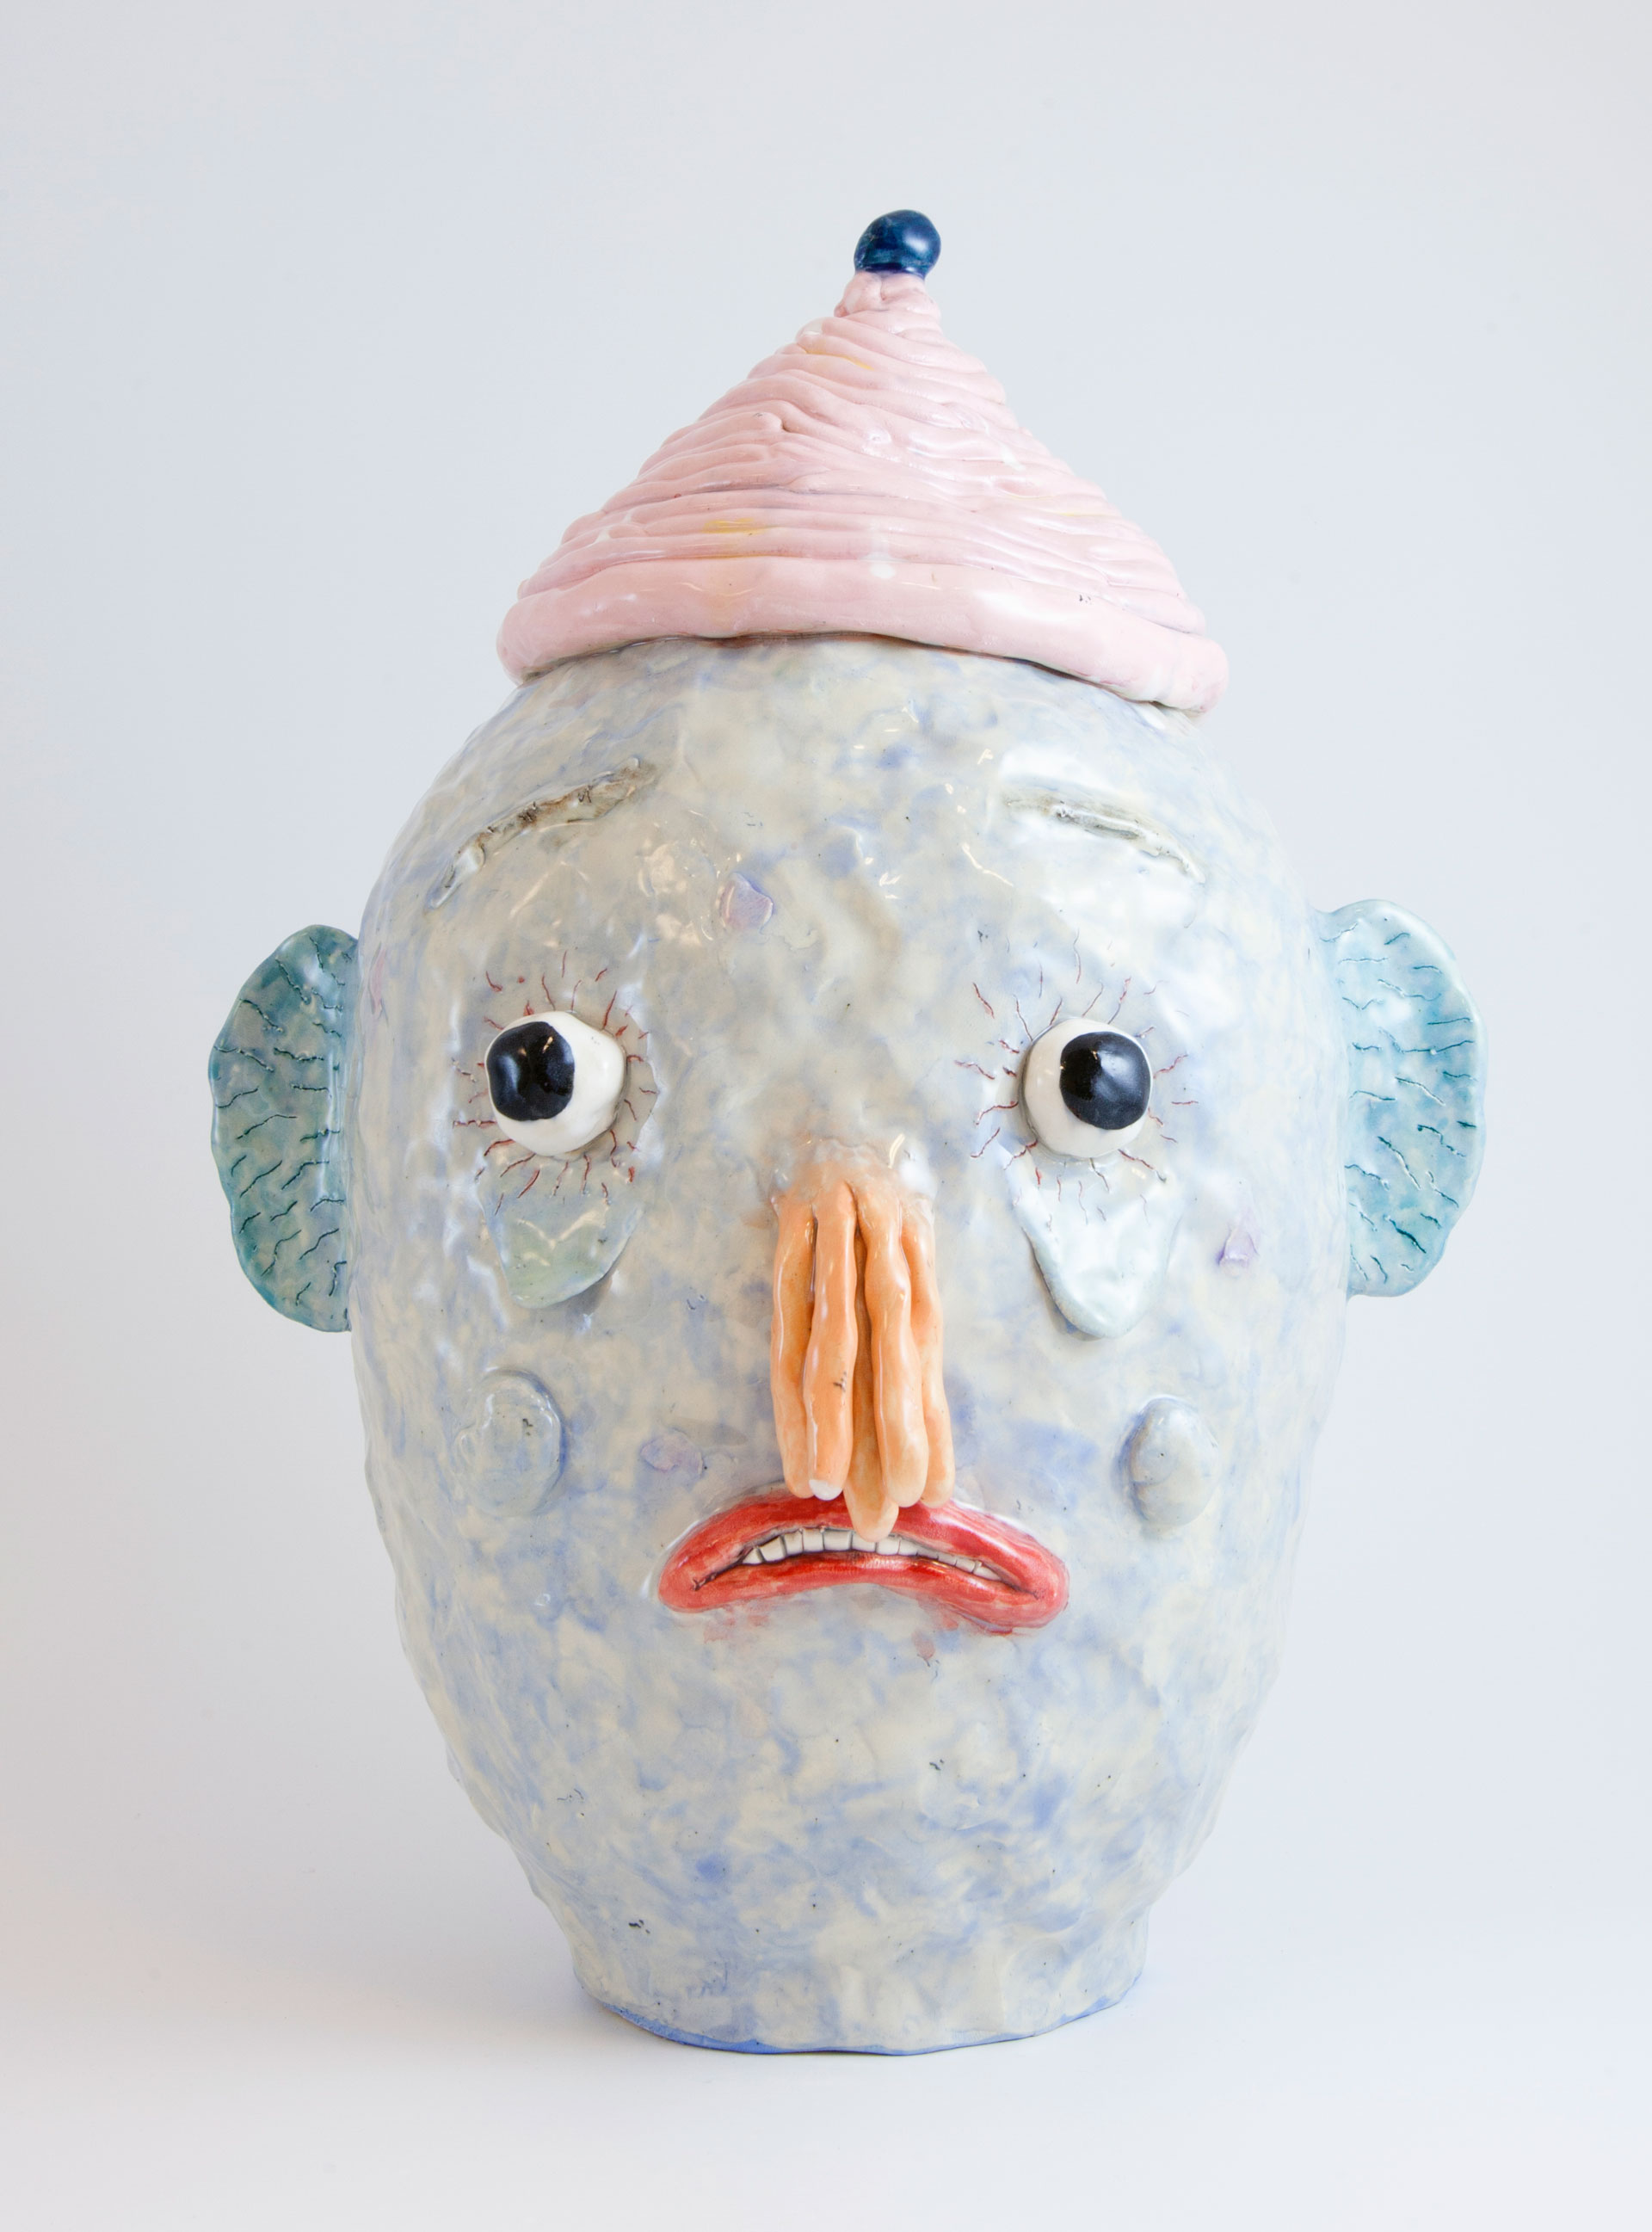 Blue-Head-with-Orange-Tentacles-Nose-·-2018-·-Glazed-ceramic-·-38-x-29-x-23-cm